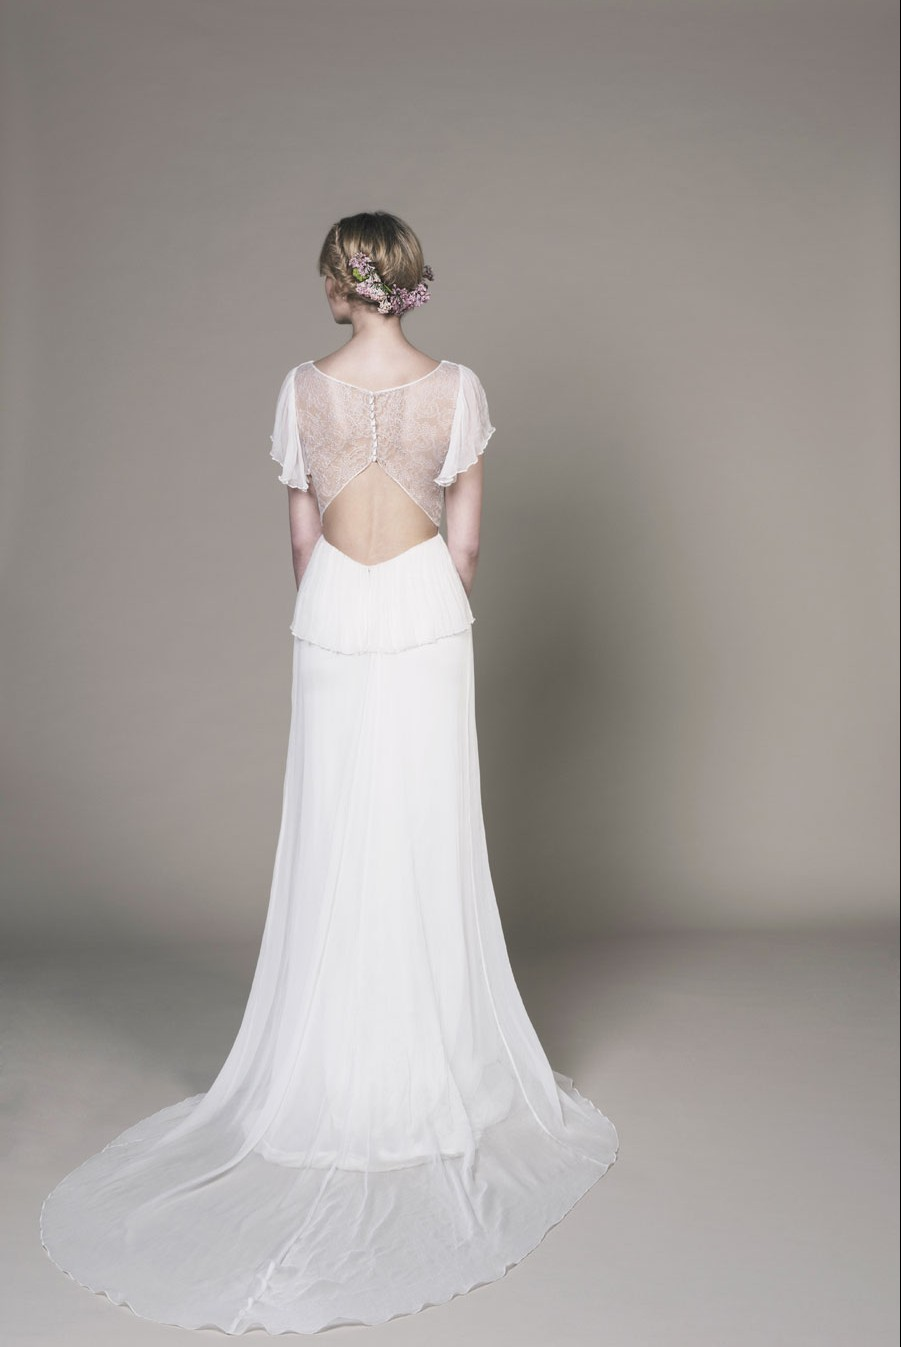 Sanyukta Shrestha: Luxury Wedding Gown Sample Sale!